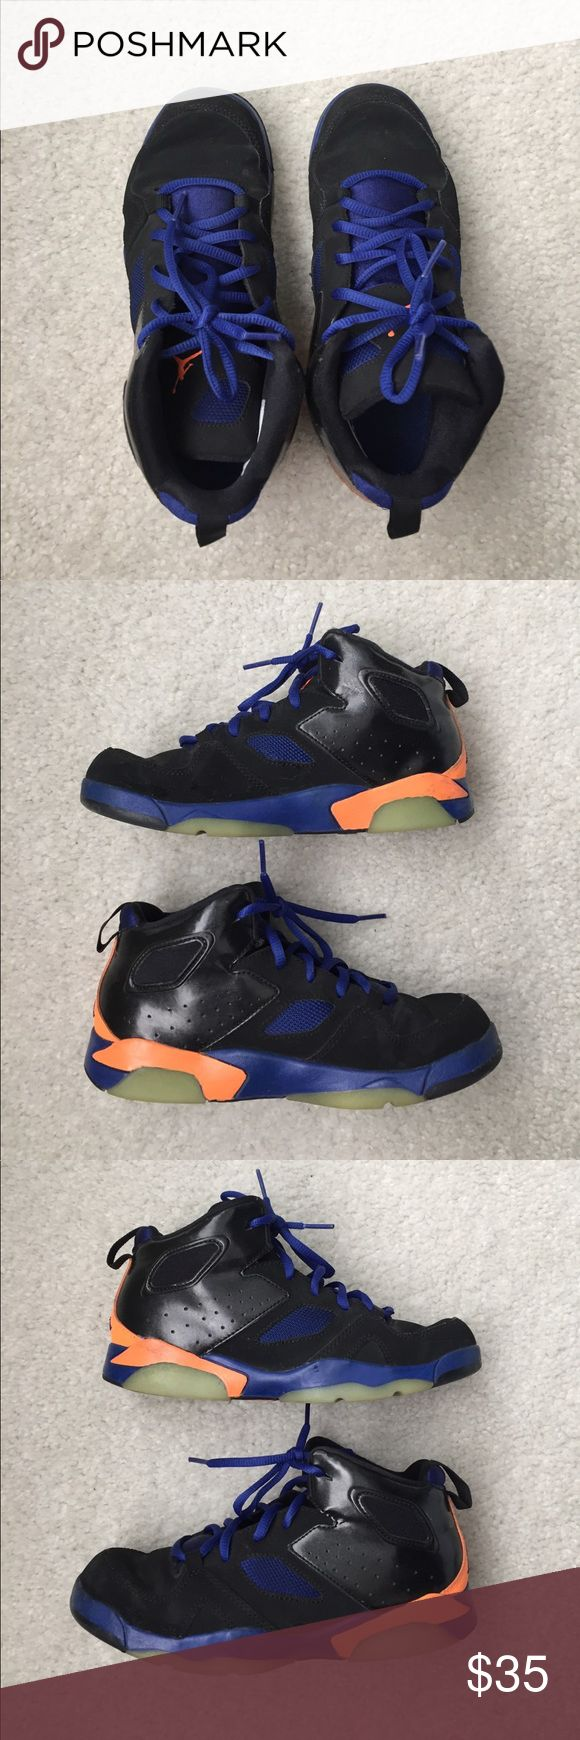 Jordan retro flight club shoes Nike Jordan flight retro shoes. Size 2Y. Black, blue and orange. Worn 1 season for basketball. Some minor scuffing on tops of shoe and on orange part. Still in great condition! Jordan Shoes Sneakers